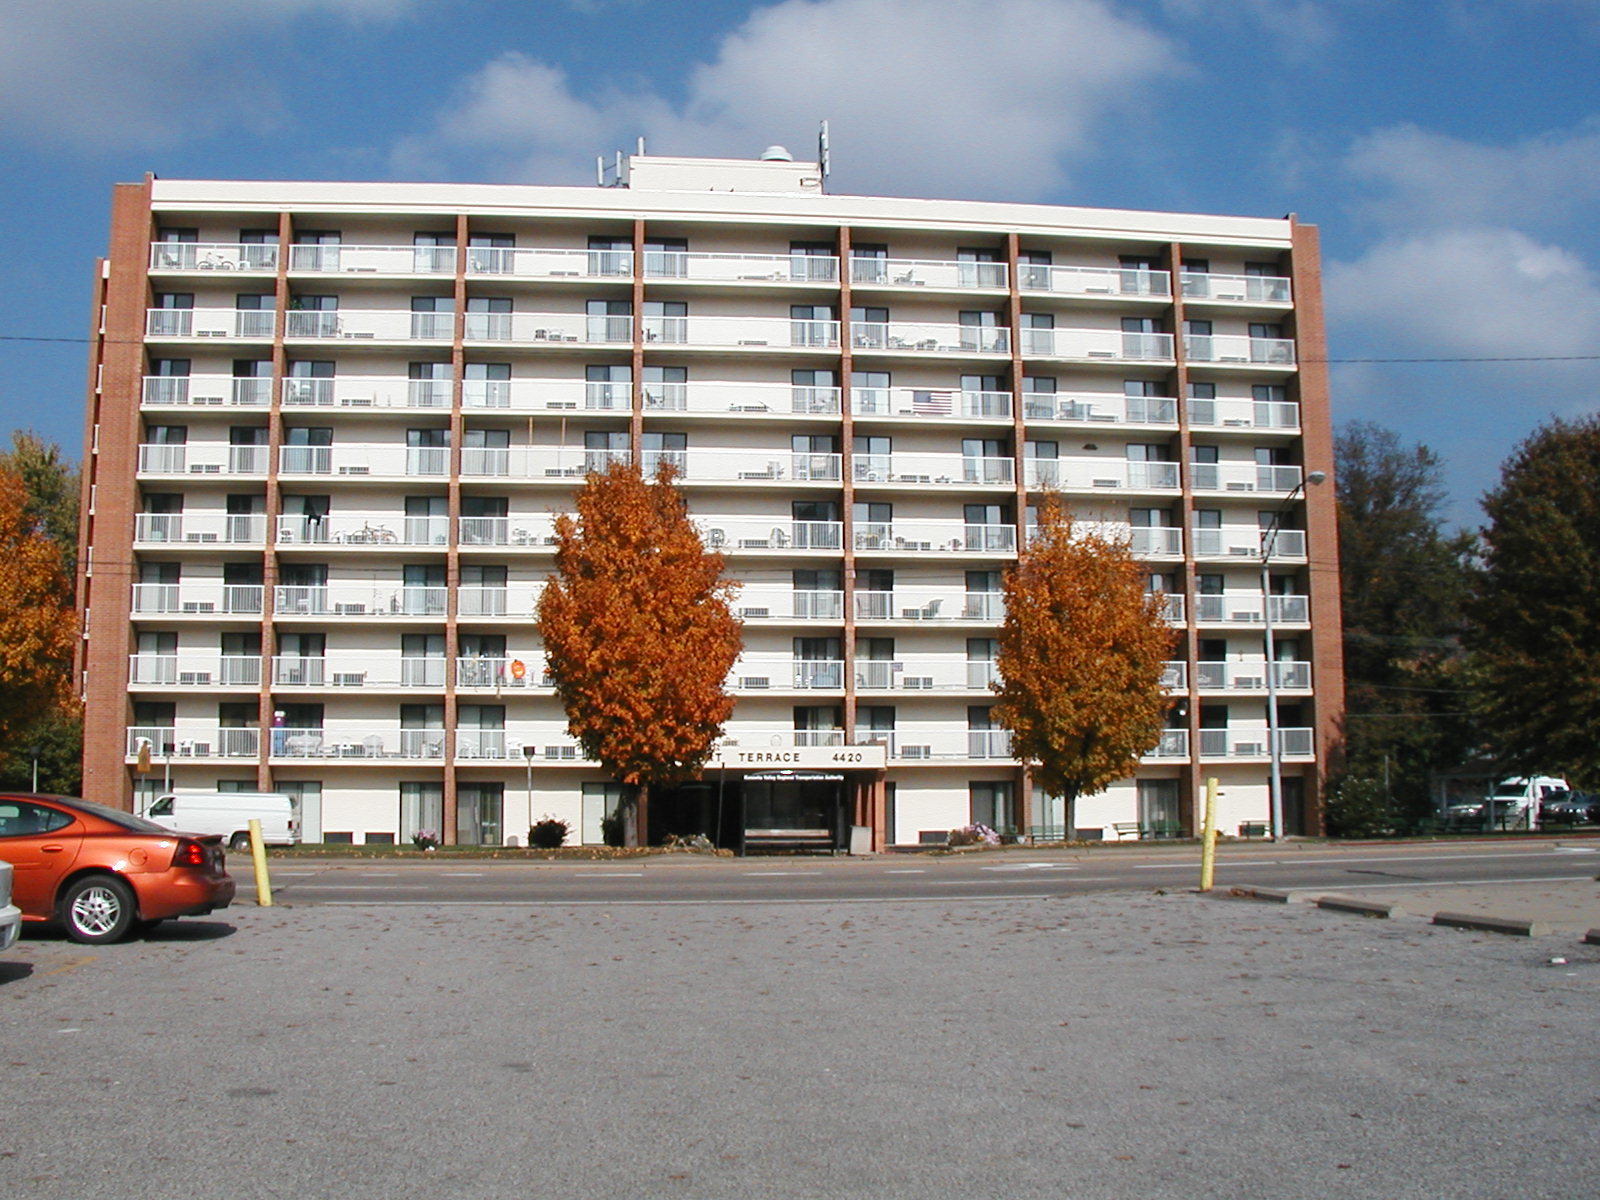 Image of Lippert Terrace in Charleston, West Virginia